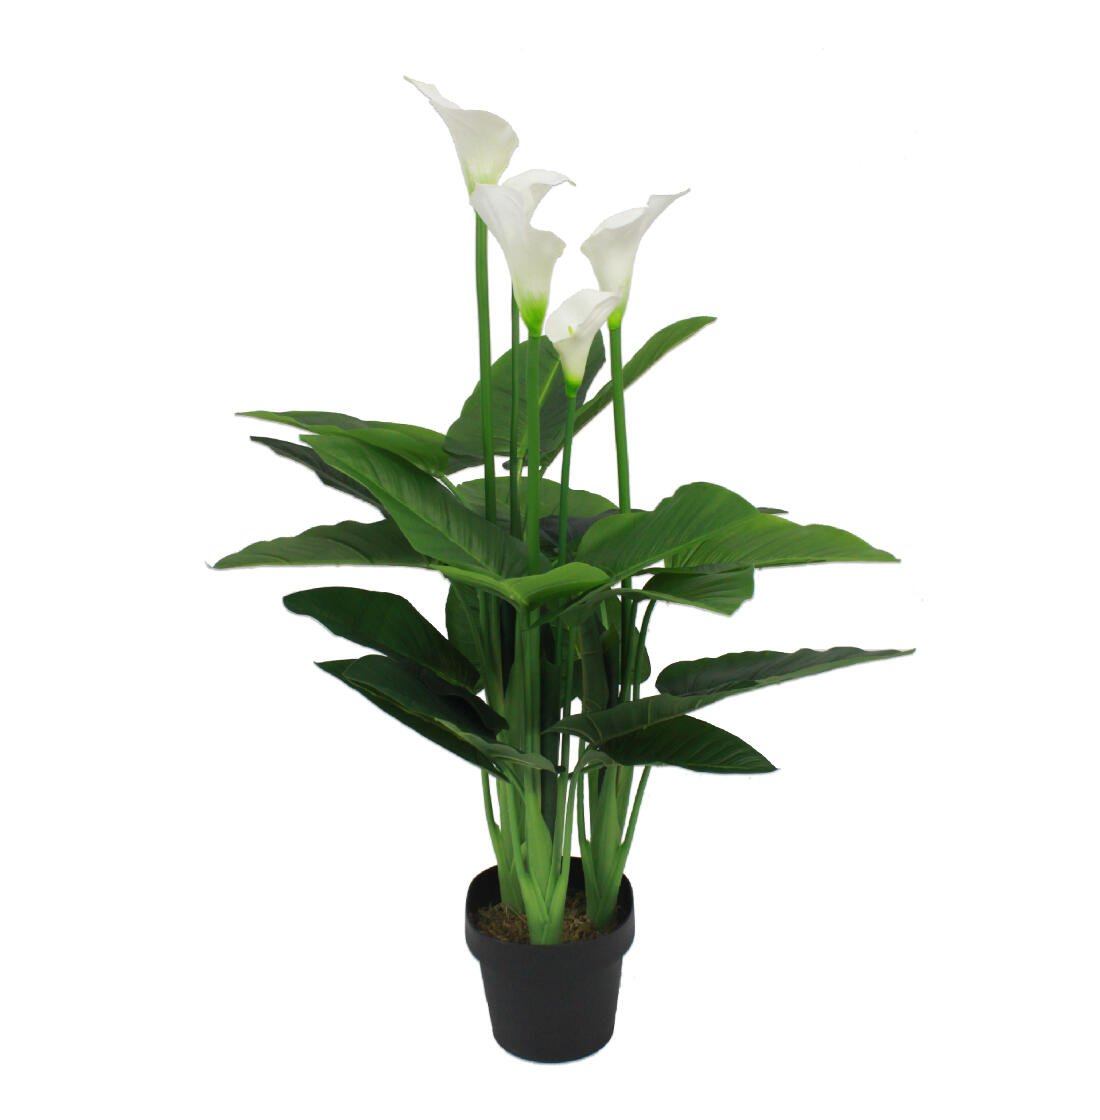 Blooming Artificial - Artificial 58cm / 2ft (H) Calla Lily, Realistic Faux Potted White Lily Magnolia Flower Plant, Perfect for Home Office Living Room Hallway Bedroom, Elegant Wedding Decor, Perfect Gift Idea BloomingArtificialUK